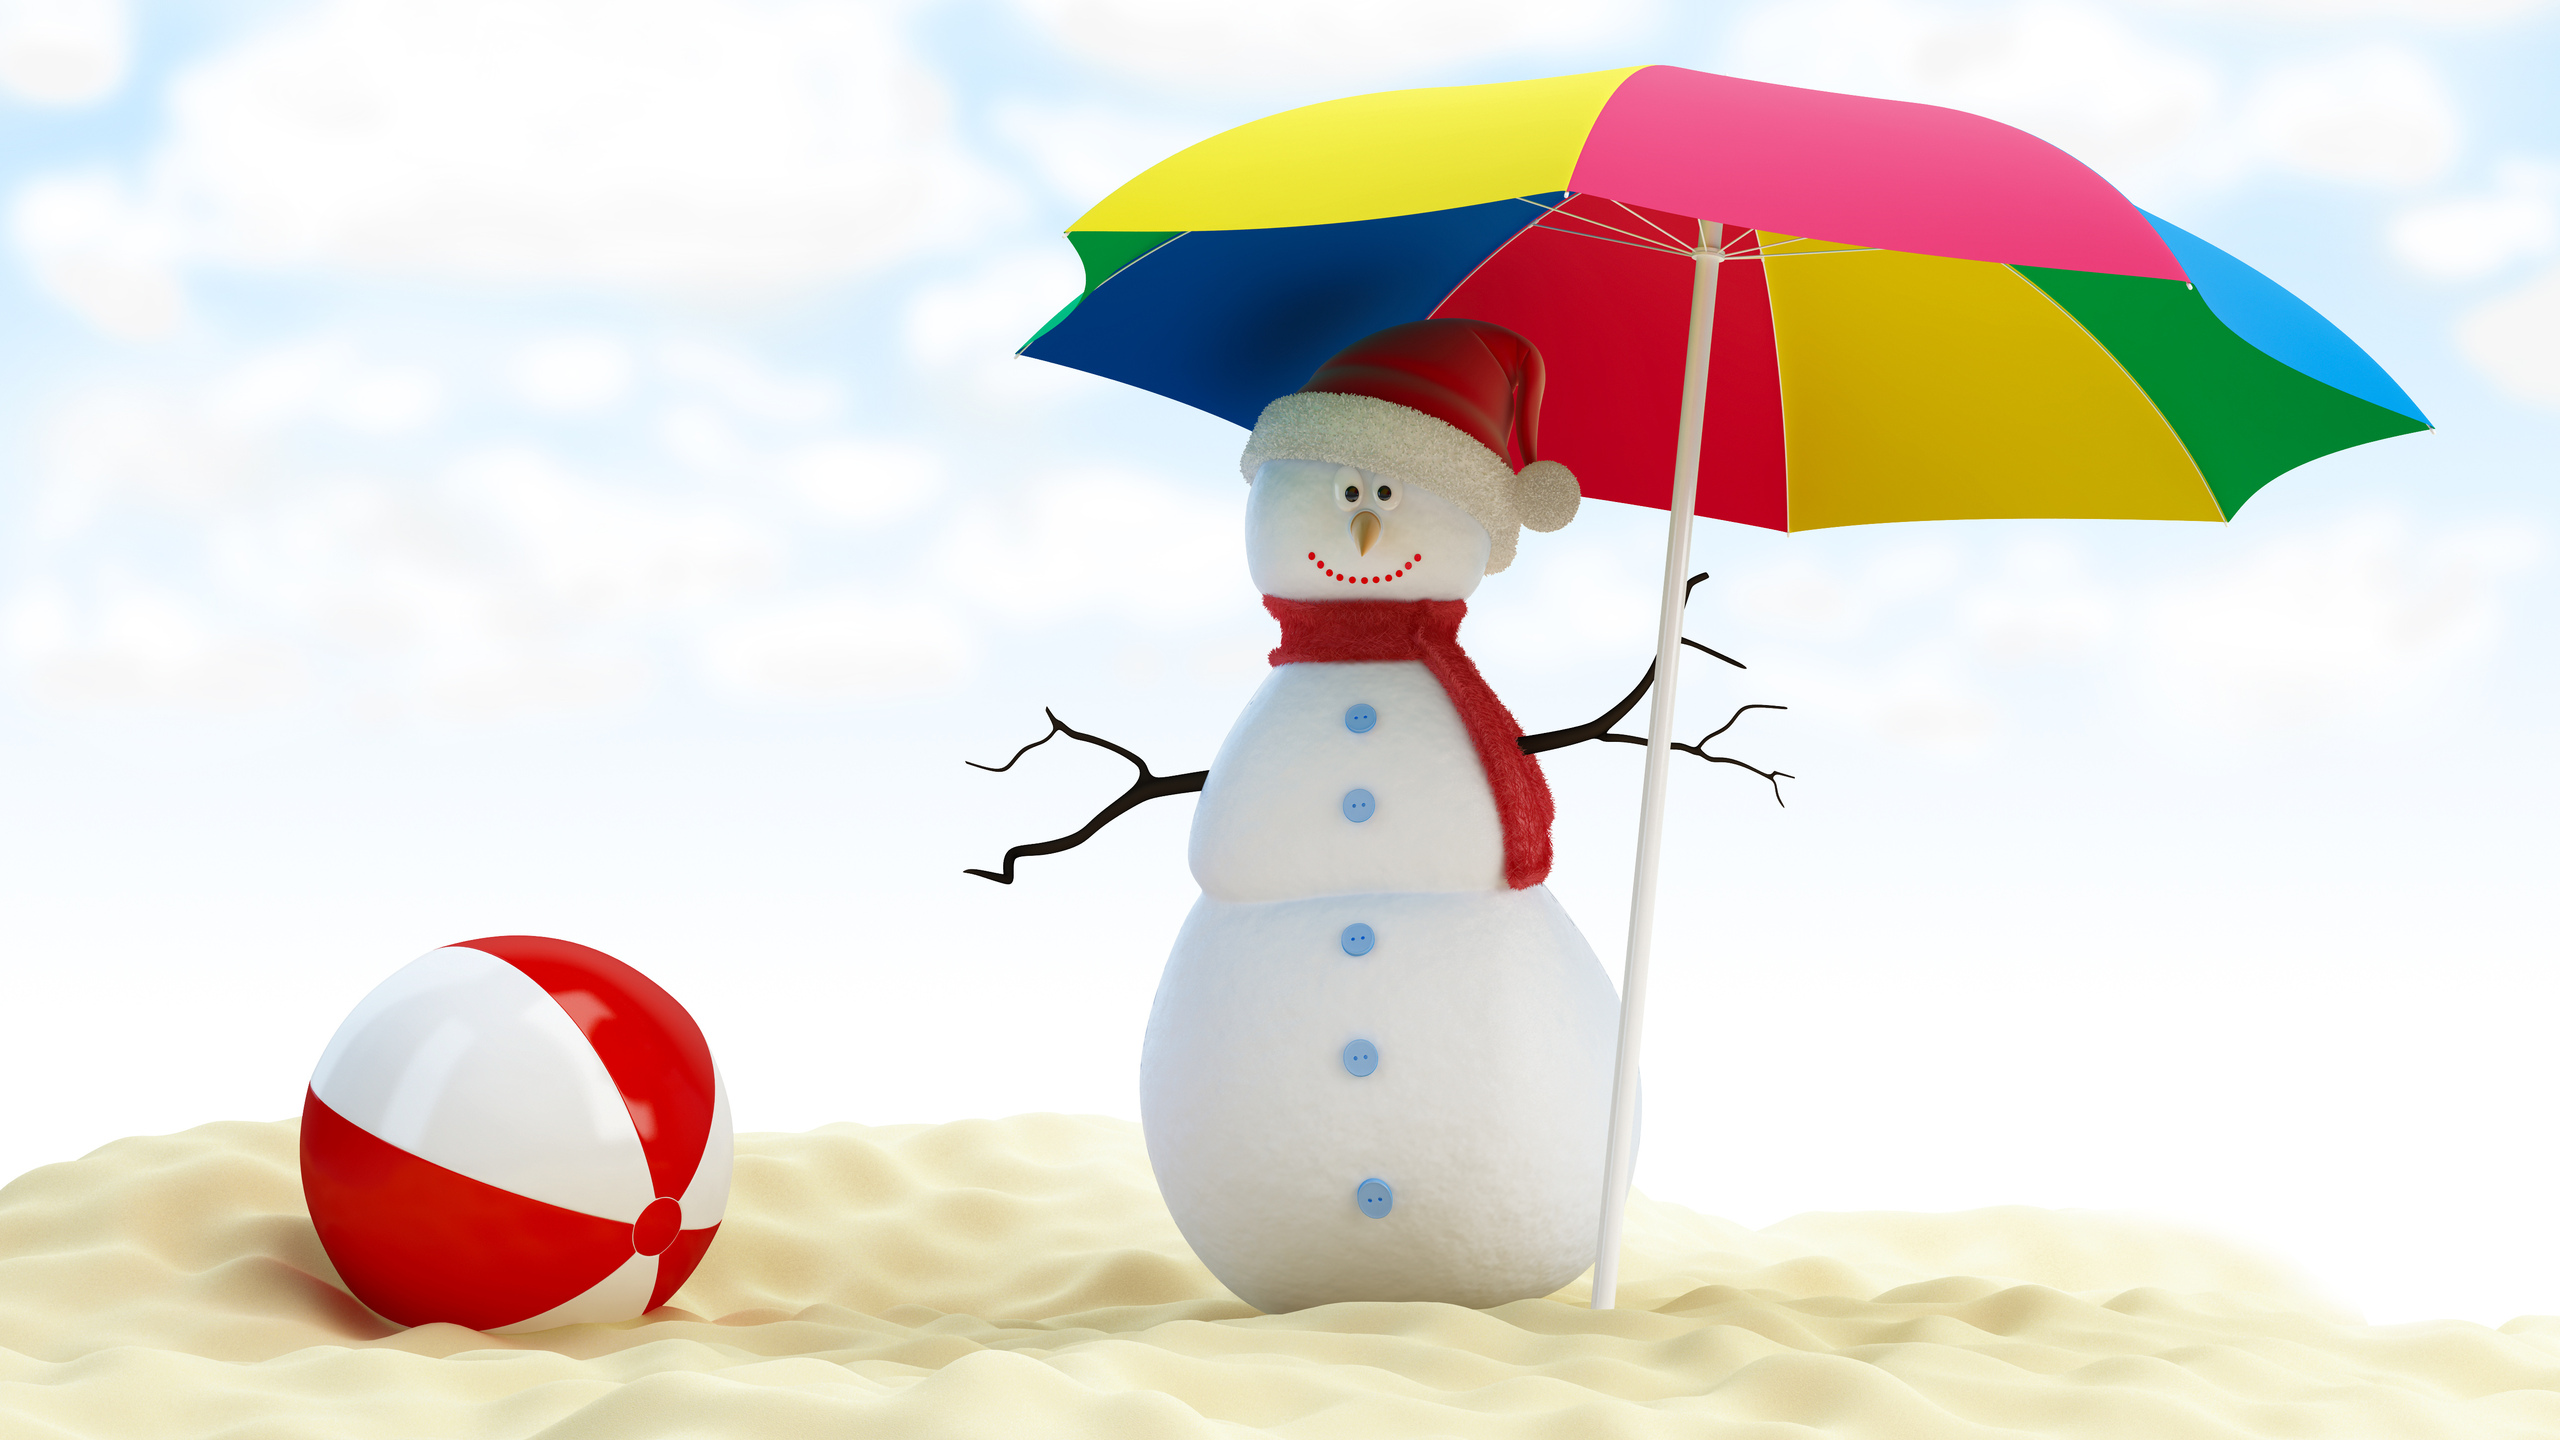 merry christmas , umbrella, snowman, веселый рождество, beach ball, new year